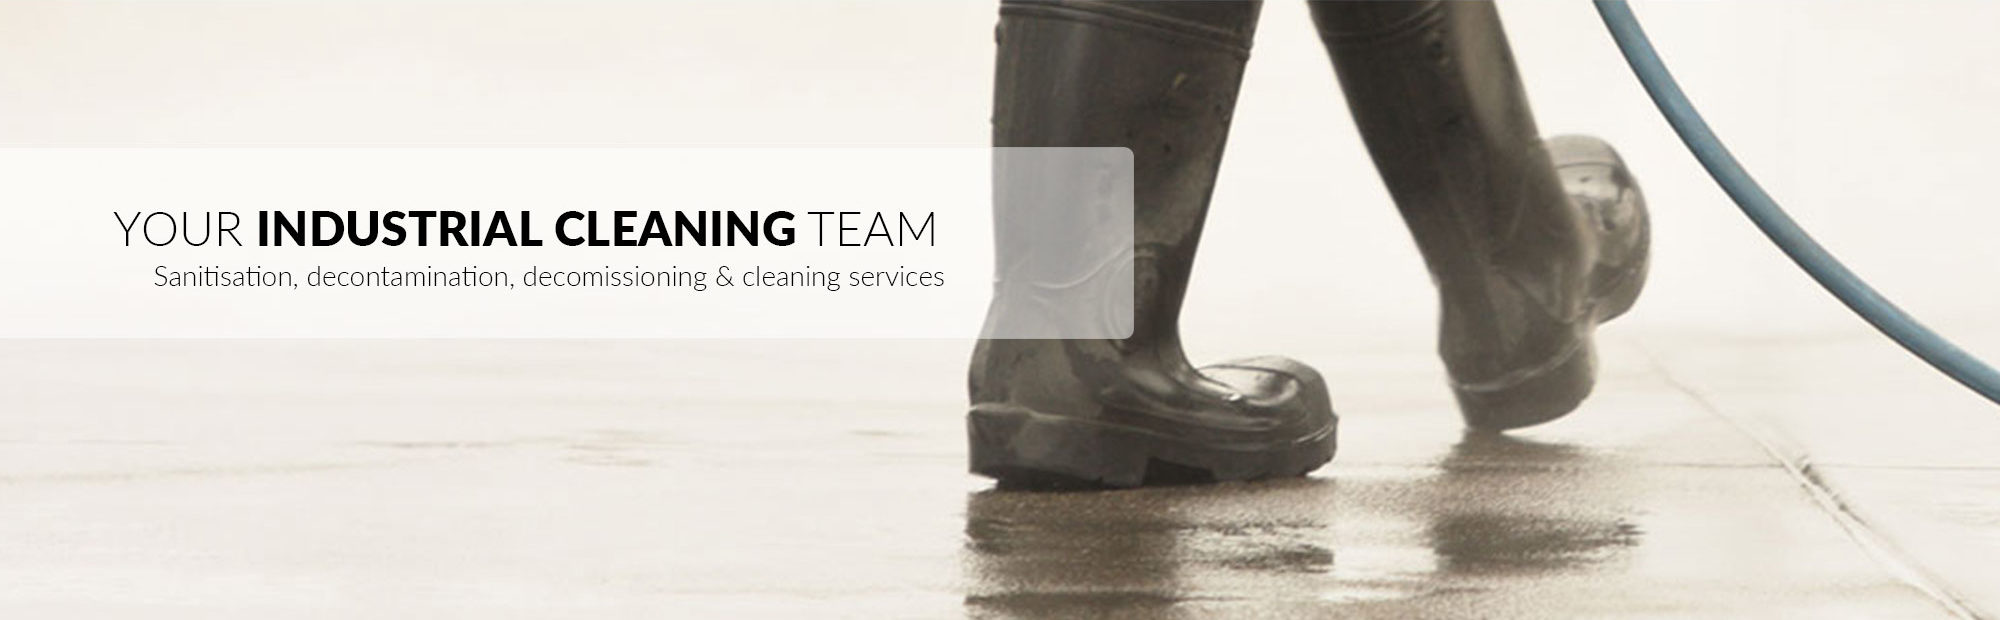 Industrial-Cleaning-Services-Team